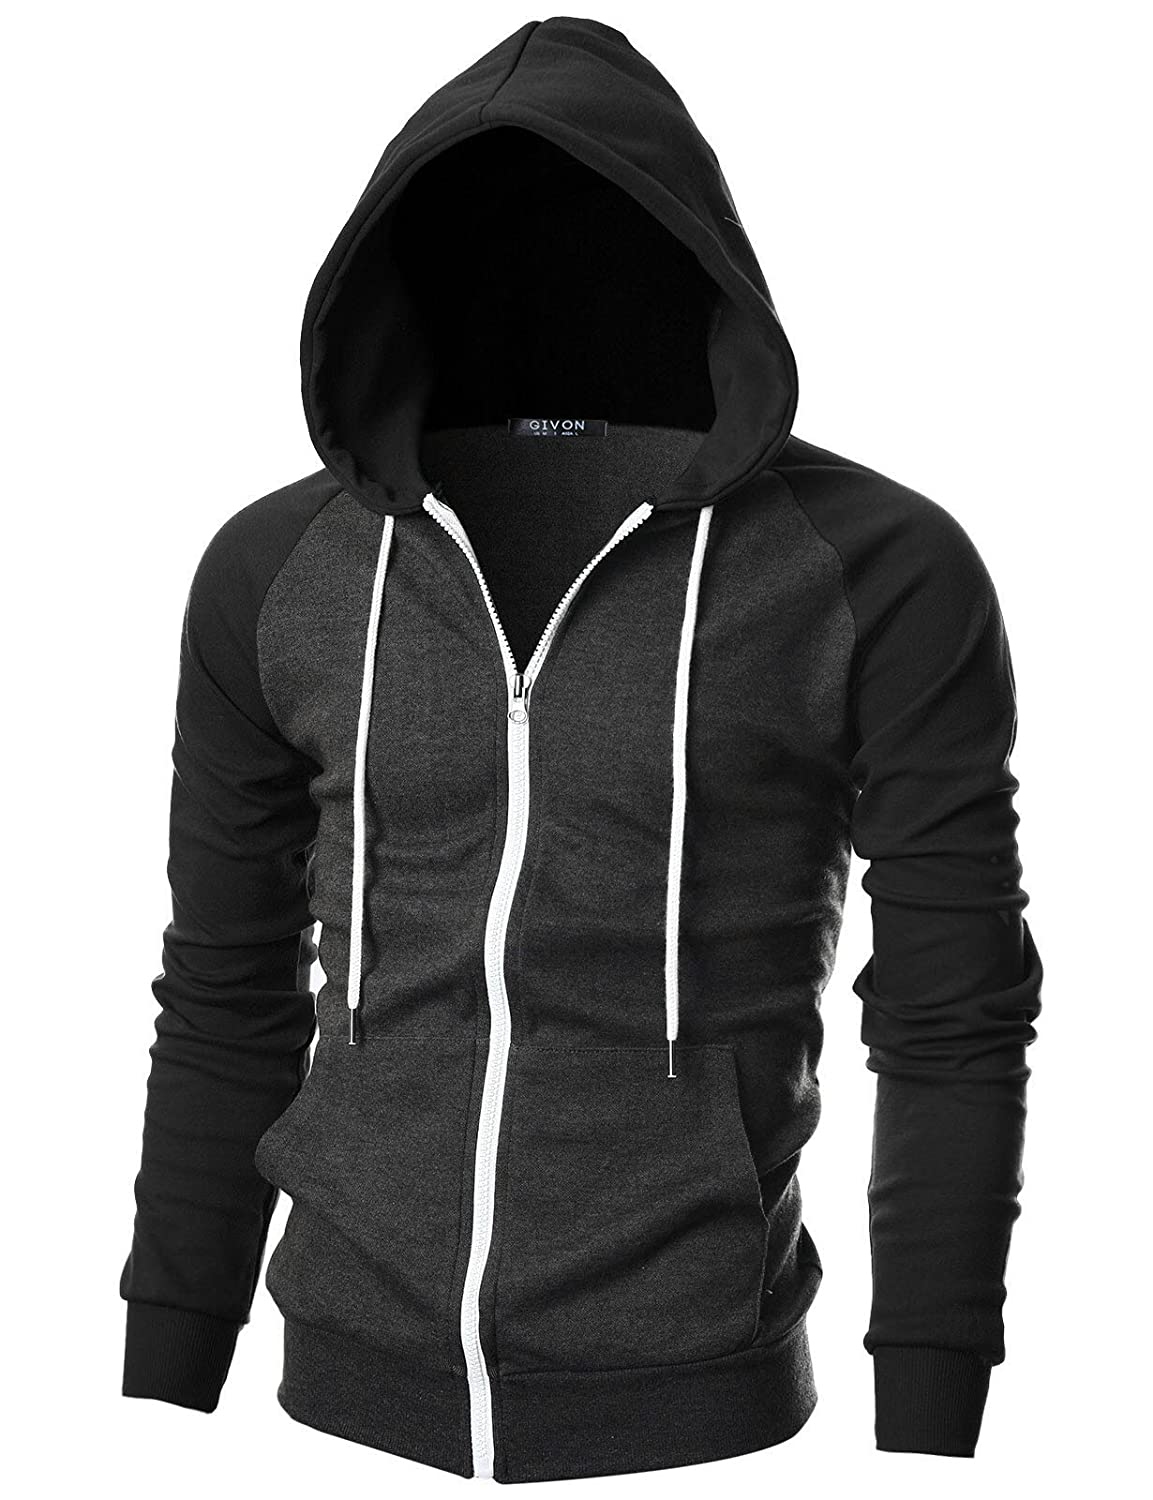 GIVON Mens Slim Fit Long Sleeve Lightweight Raglan Zip-up Hoodie with Kanga Pocket